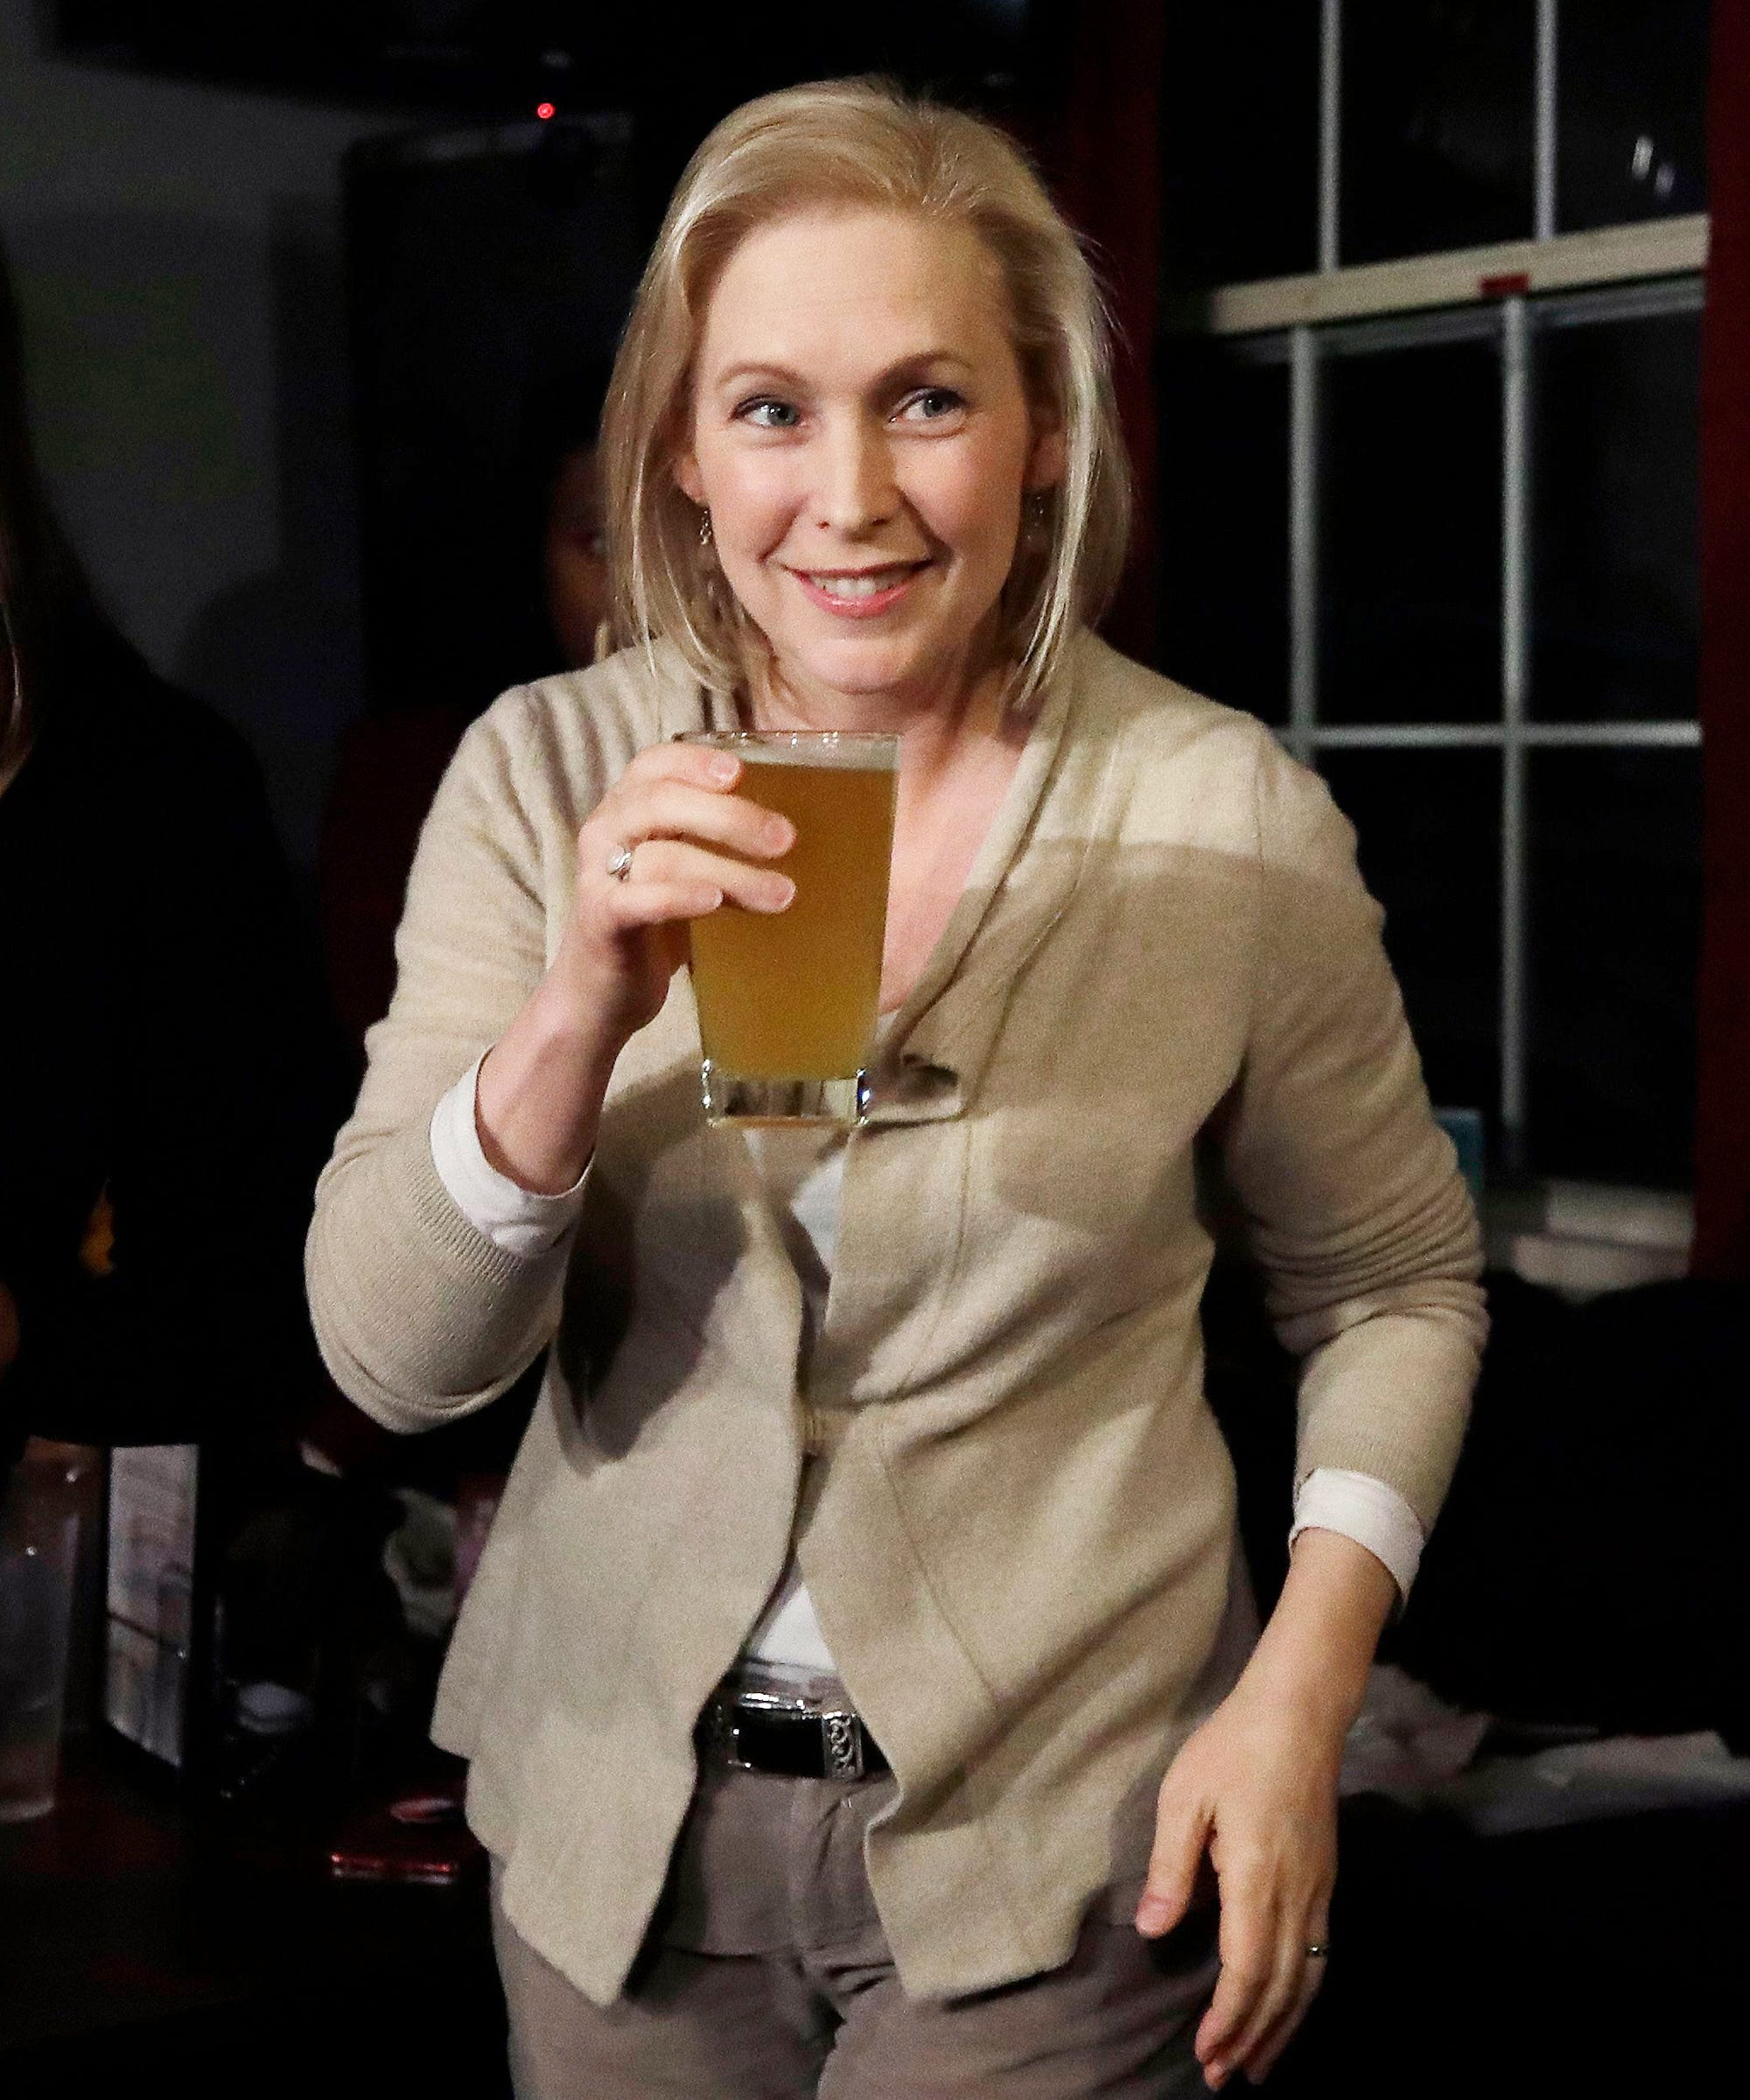 The Only Democratic Debate Drinking Game You'll Ever Need